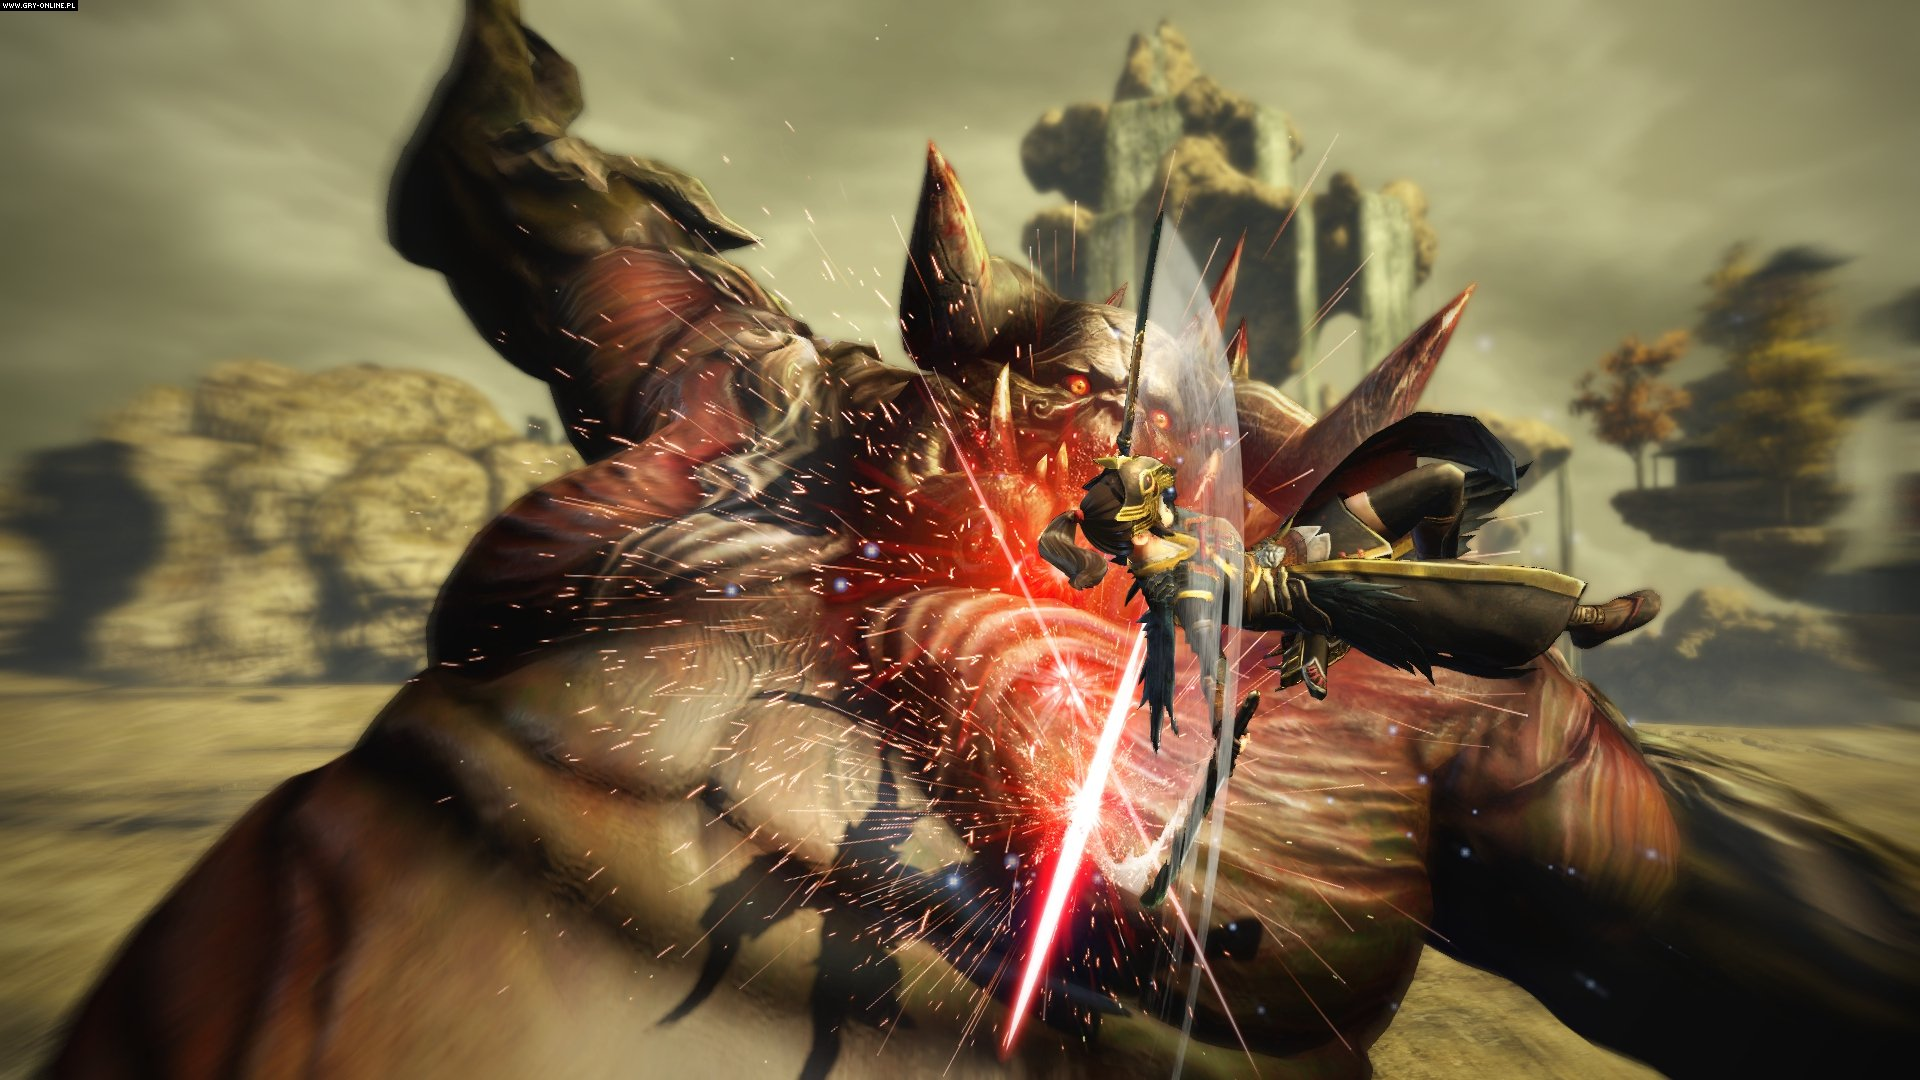 Toukiden 2 PC, PS4 Gry Screen 5/75, Omega Force, Koei Tecmo